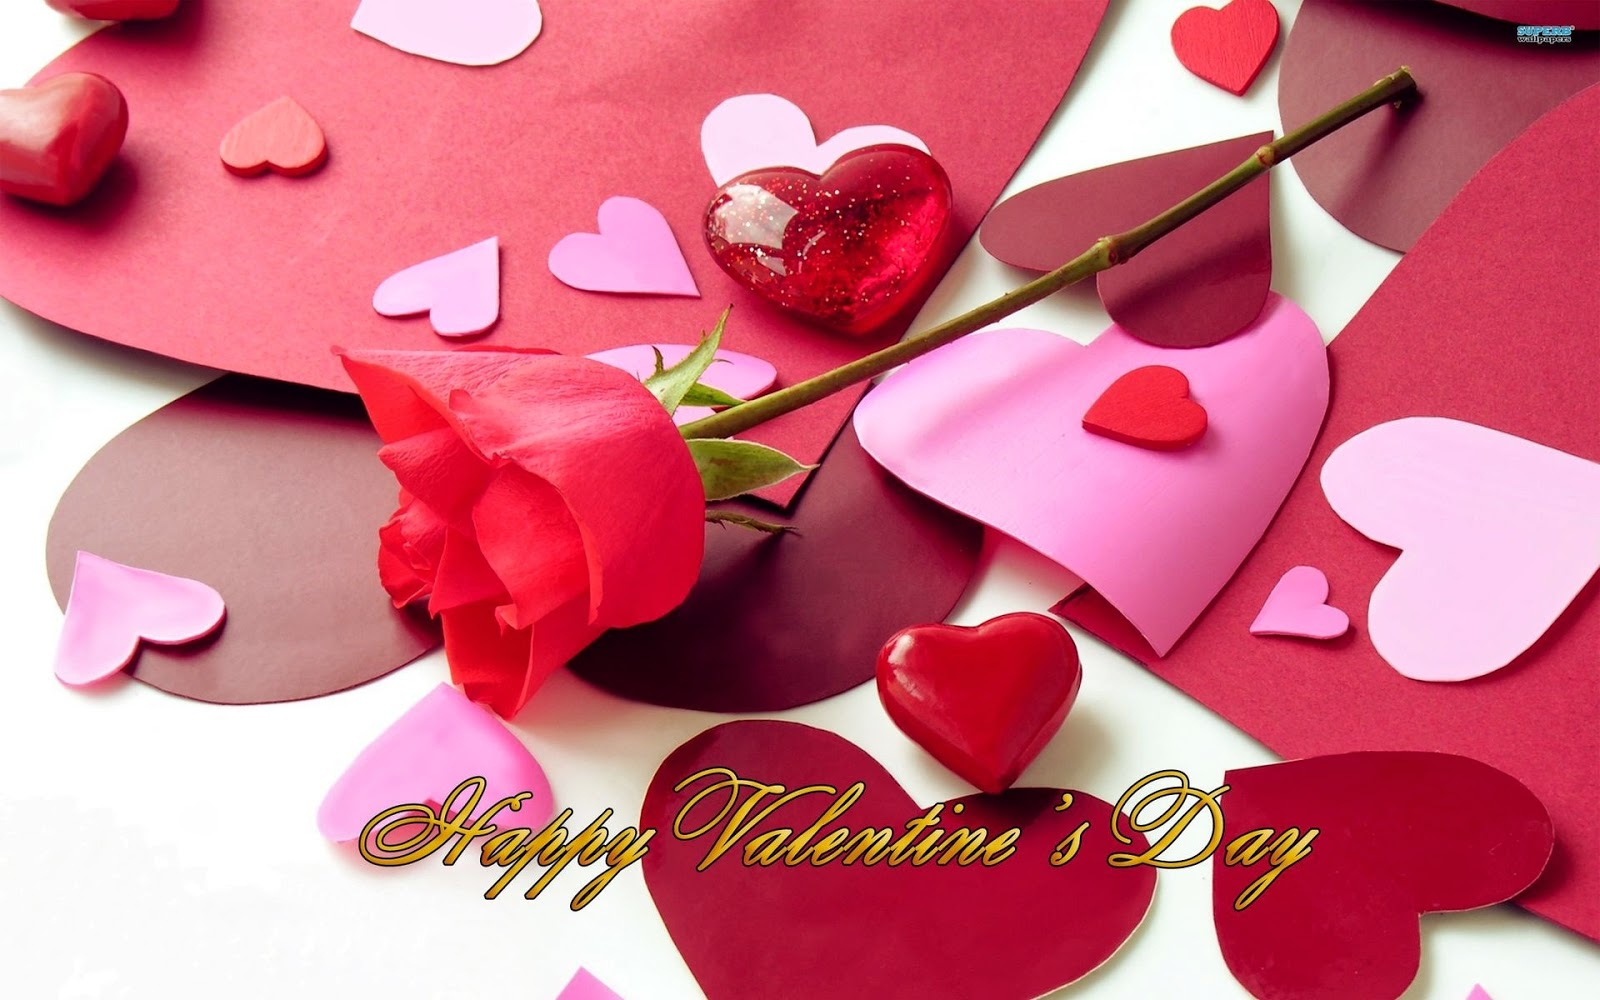 Love heart valentines day greeting wallpapers 14 february 2015 love heart valentines day greeting wallpapers 14 february 2015 happy valentines day 2015 m4hsunfo